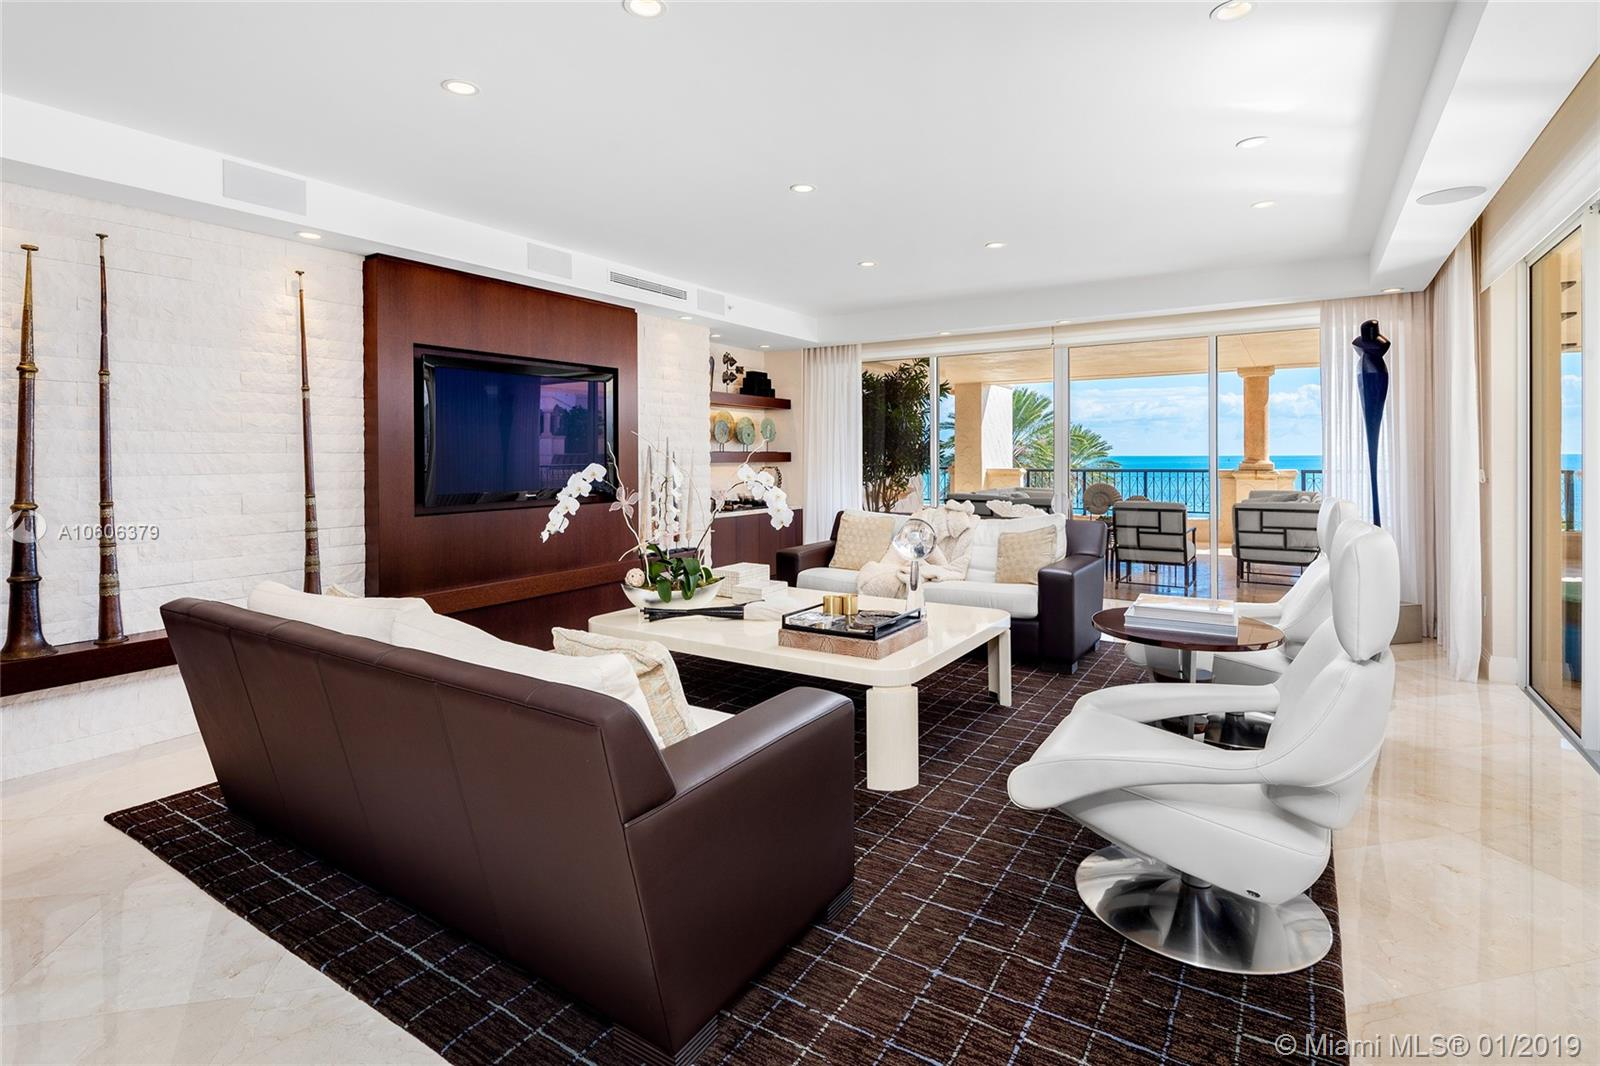 This 3BR/3+1BA Oceanside corner unit features 3,691 SF of immaculately designed interior spaces w/Crema Marfil marble floors, Venetian plaster walls & large ocean side wraparound terrace w/unobstructed sunrise beach & Atlantic Ocean views. Spacious open living room w/a beautiful onyx bar & dining room surrounded by walls of glass that stream natural lighting. An amazing gourmet kitchen sports top of the line Miele & Sub-Zero appliances, custom Snaidero cabinetry & a large breakfast area. The sumptuous master suite offers an office space, direct terrace access & stunning master bath w/limestone floors, walk-in rain shower & sunken spa tub. The other two bedrooms each with en-suite bathrooms & share a terrace w/Fisher Island views.  5-star Fisher amenities complete this offering.